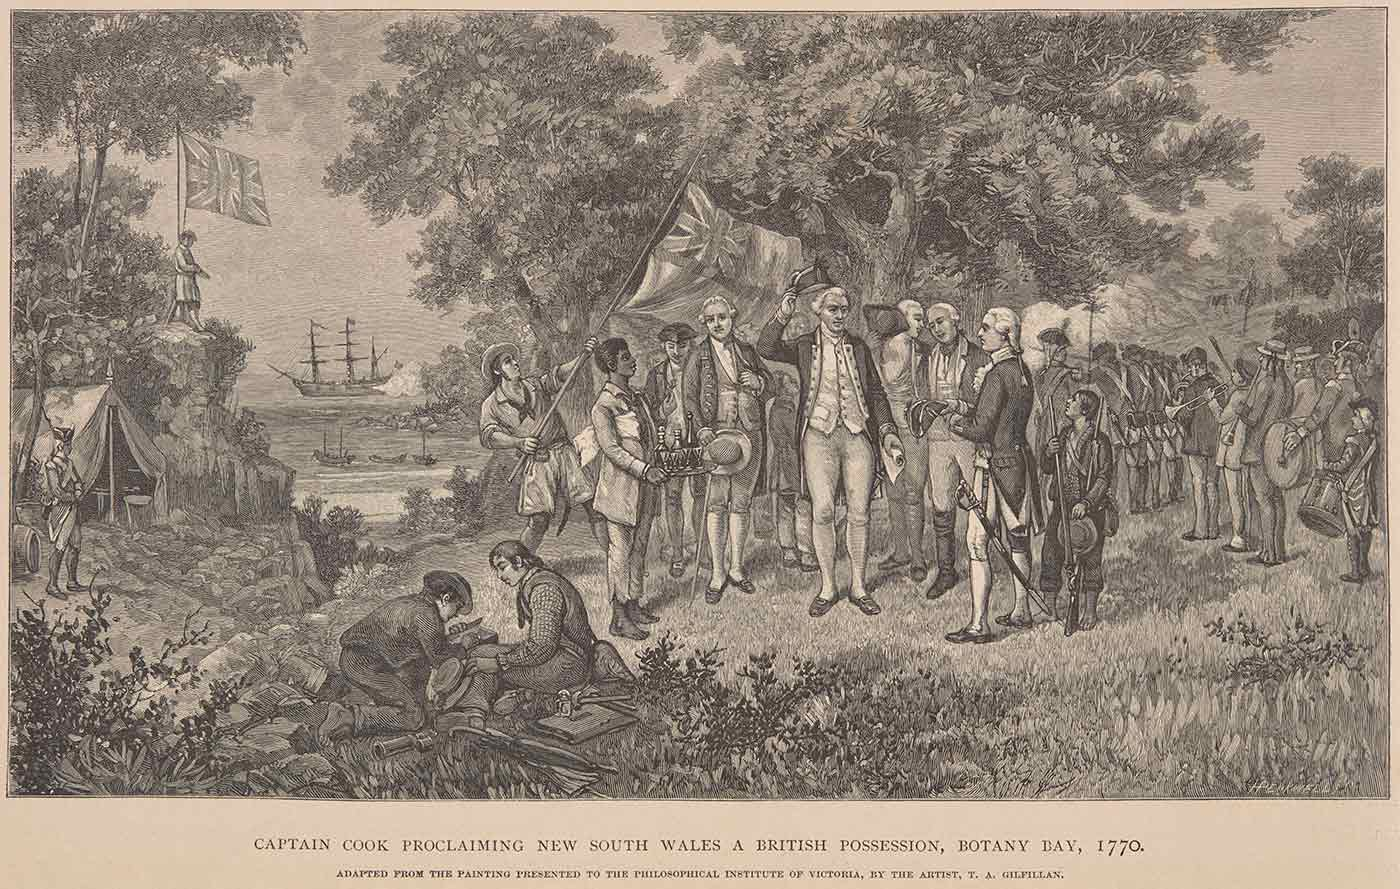 Illustration entitled Captain Cook Proclaiming New South Wales a British Possession, Botany Bay, 1770, from page 8 of Picturesque Atlas of Australasia. - click to view larger image